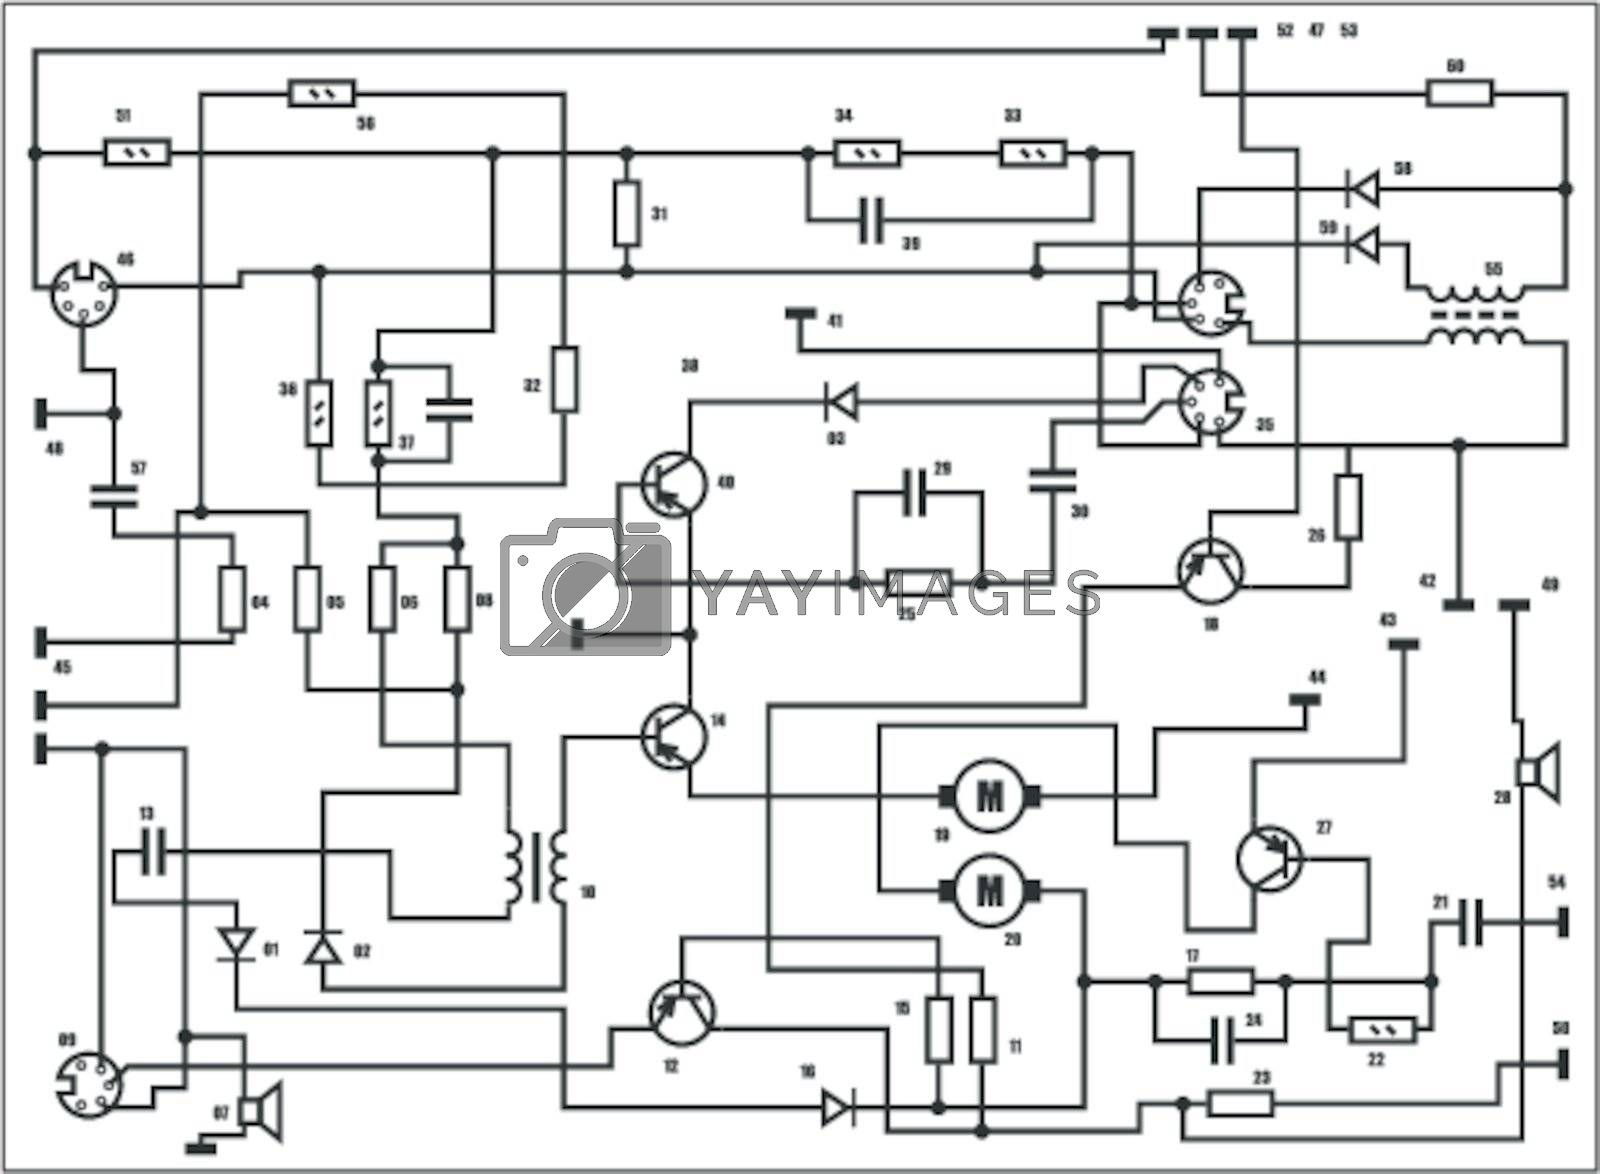 Electric scheme - fantasy technology vector background